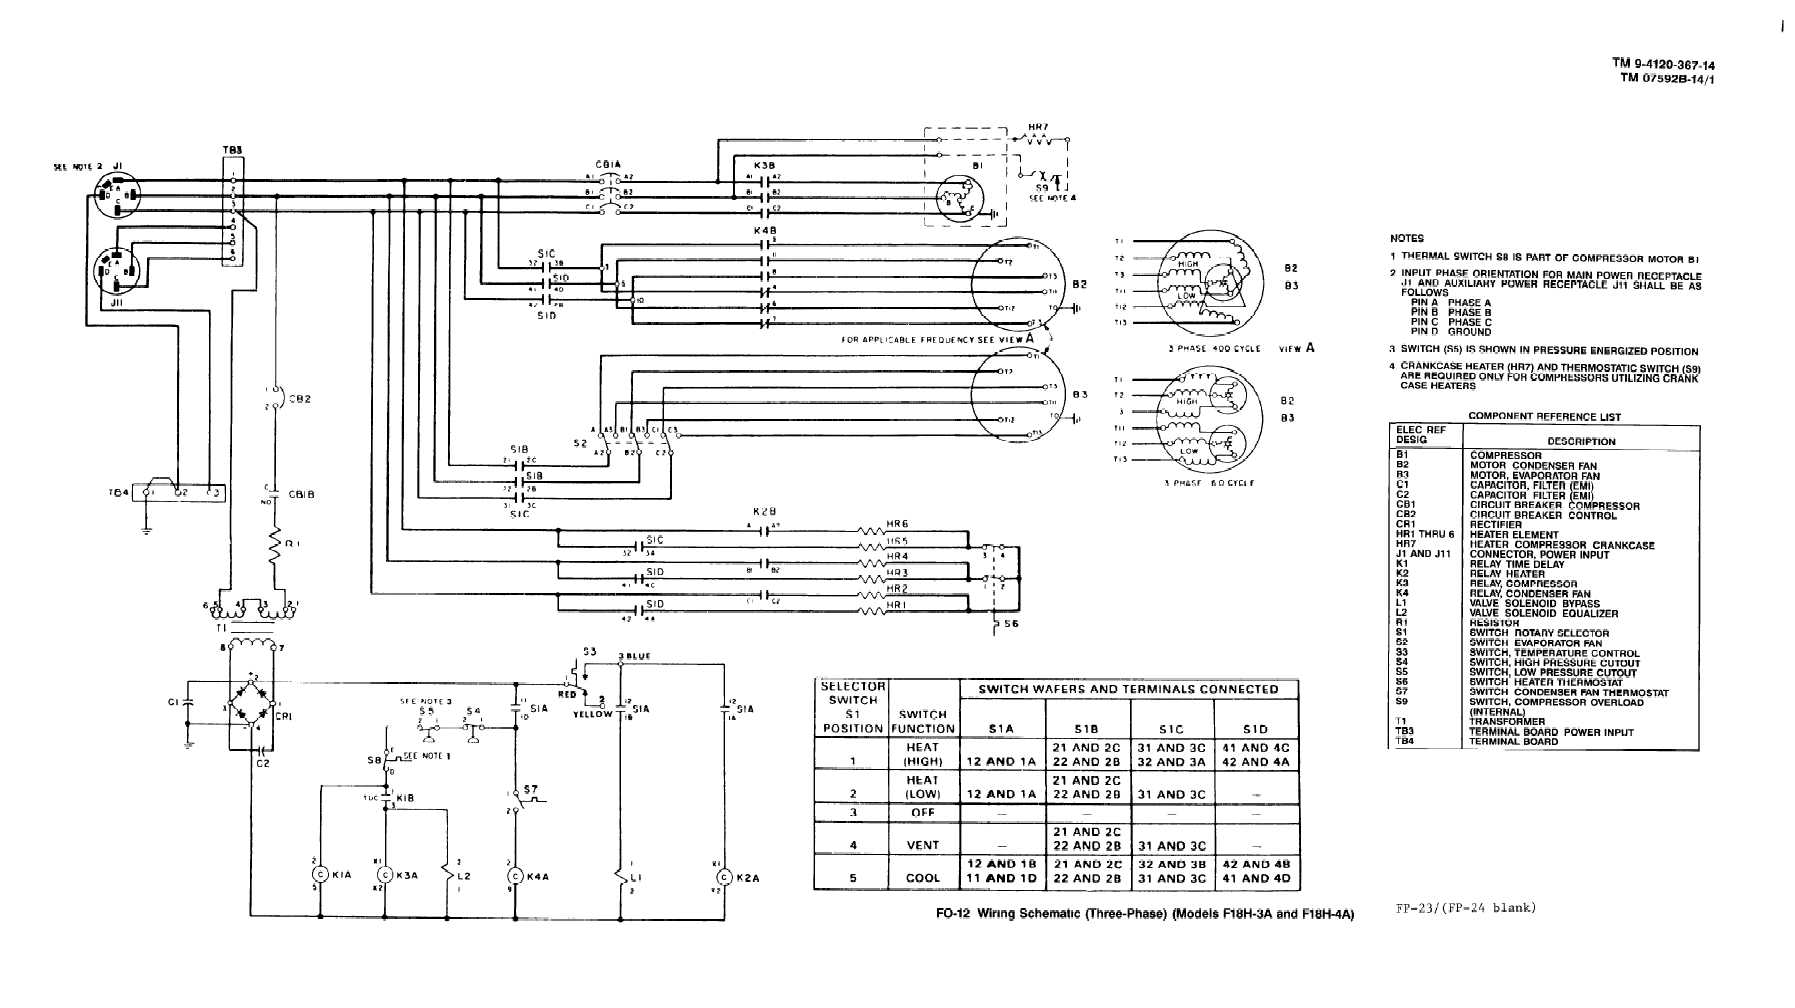 single phase meter panel wiring diagram images wiring diagram 3 phase meter wiring diagram in addition wiring diagram